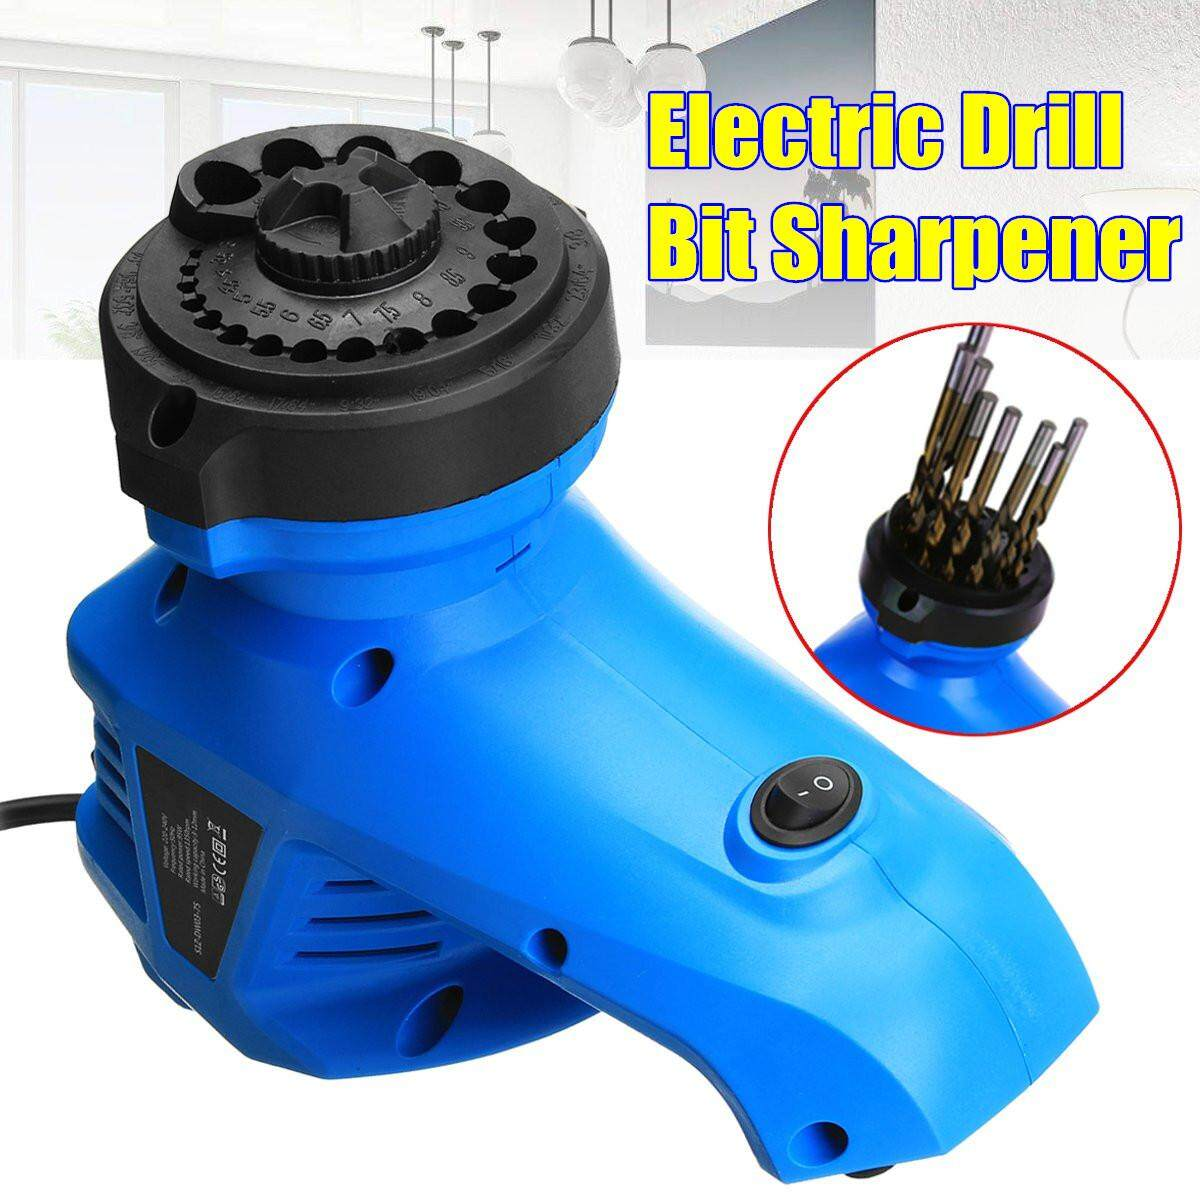 Electric Multi Tool Grinding Machine Twist Drill Bit Sharpener Grinder - intl